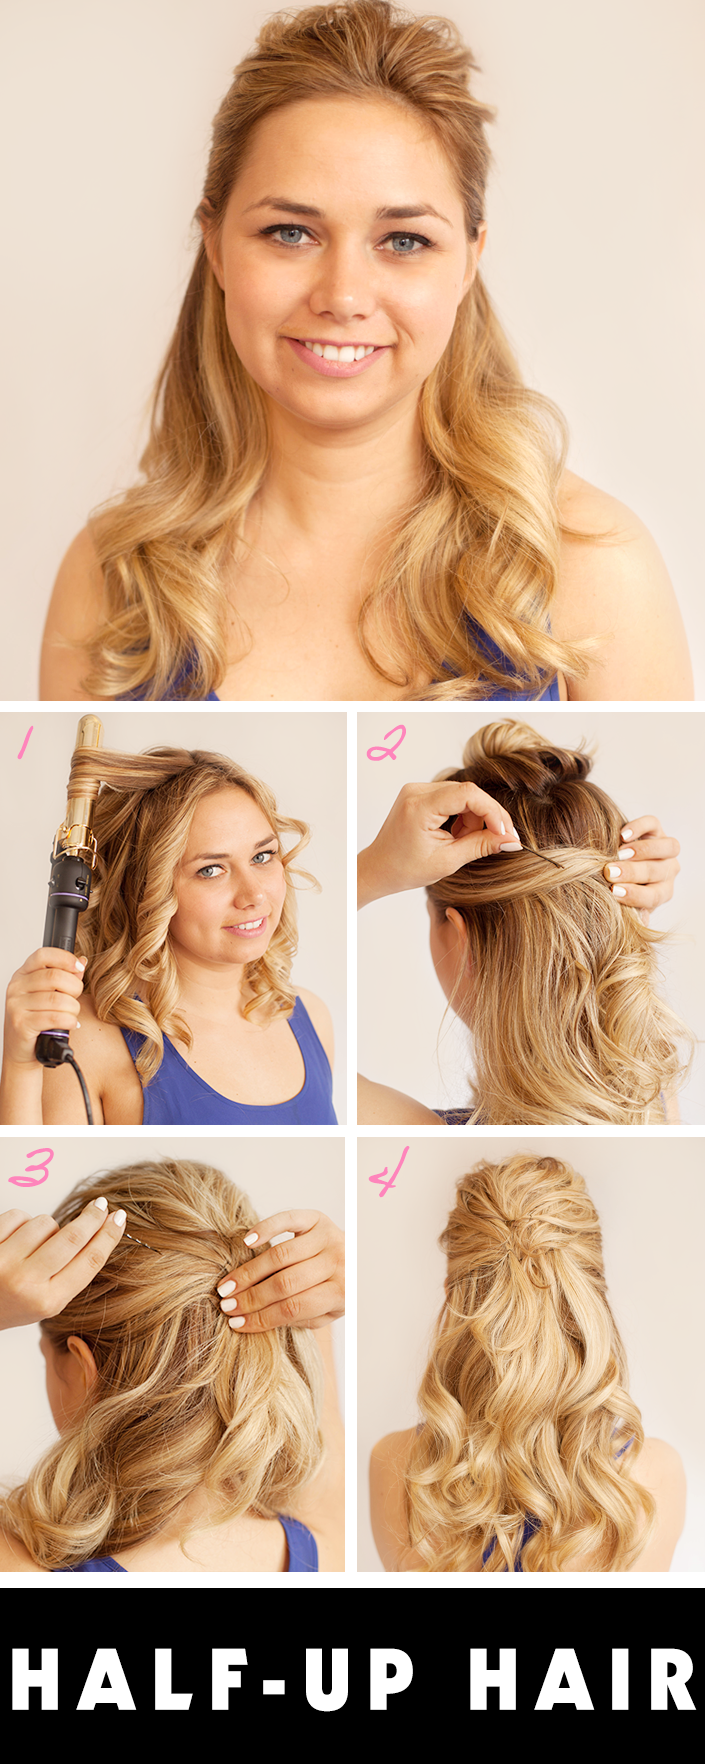 Prom Hairstyles Half Up Half Down | StyleCaster